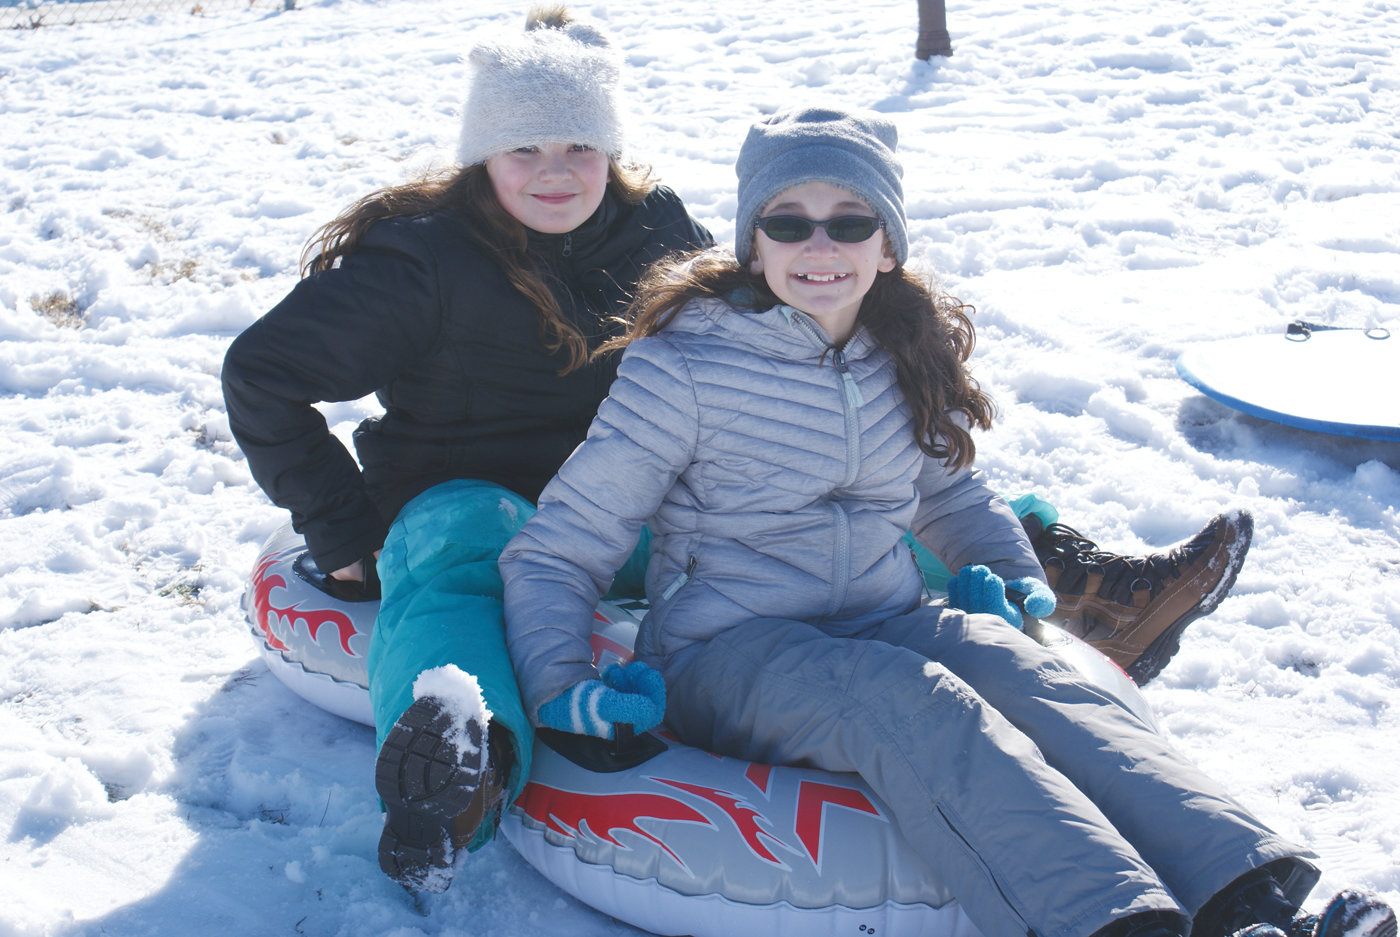 CLASSMATES: Classmates at Glen Hills Elementary School classmates Kaylee Loffredo, 11, and Jaelyn Cogean, 10, hit the slopes together.